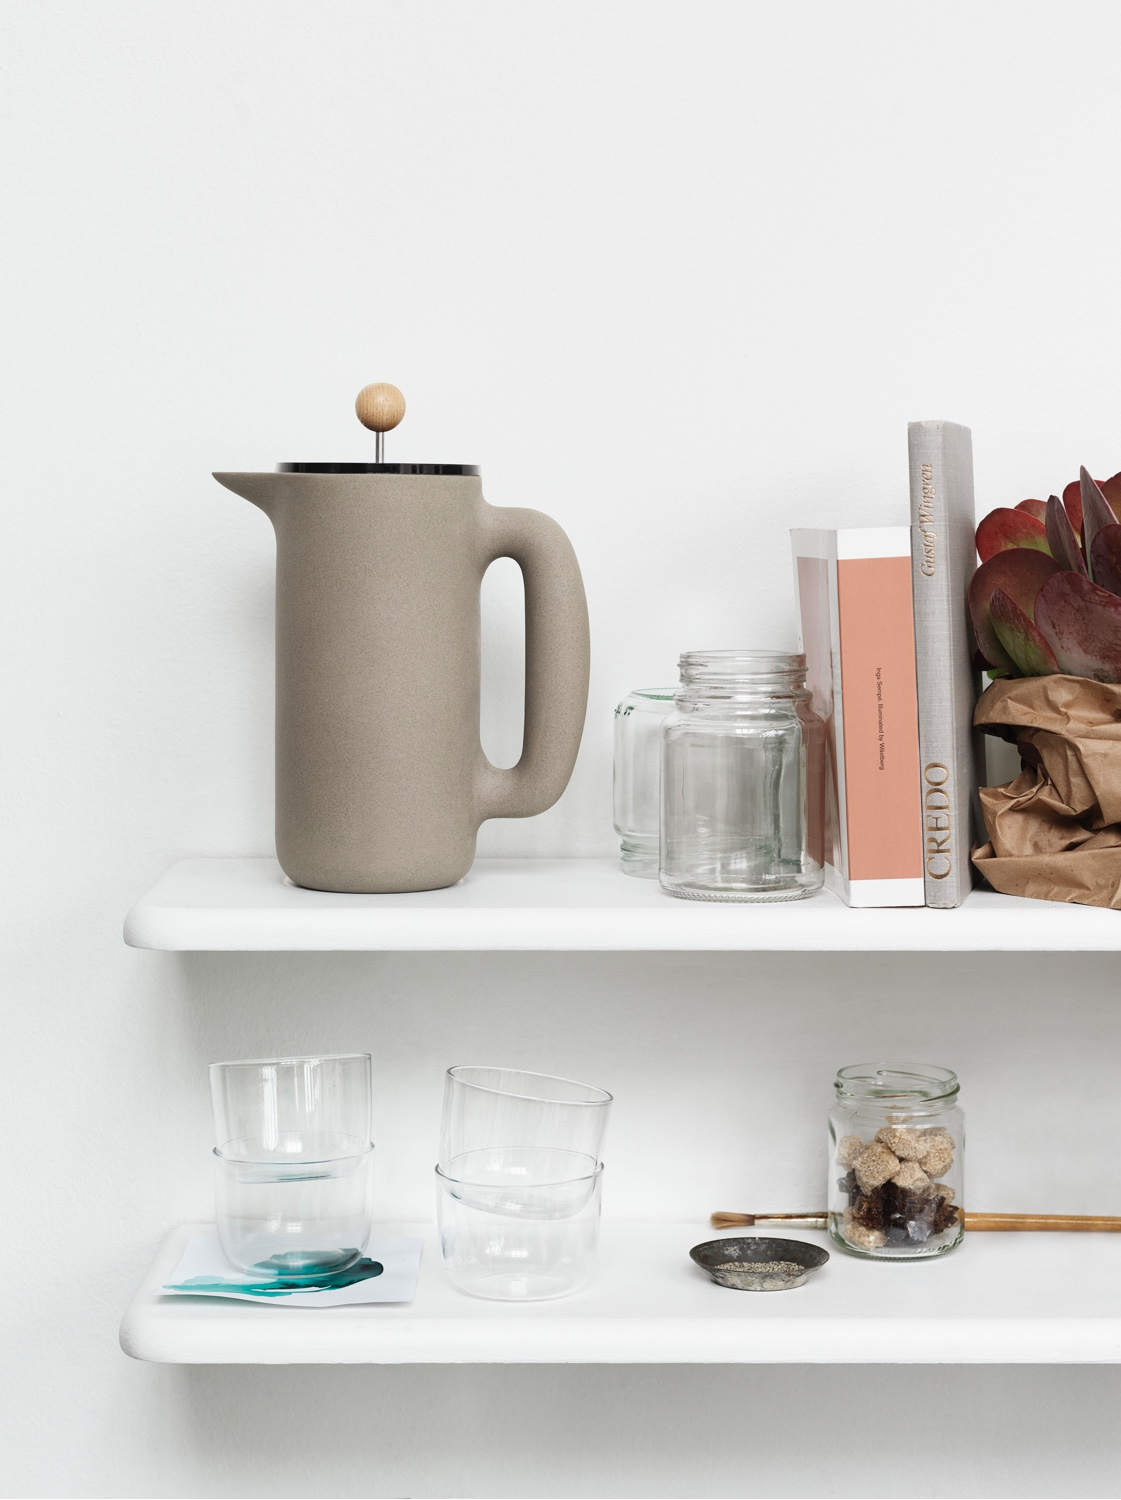 PUSH coffee maker. Image via Muuto.